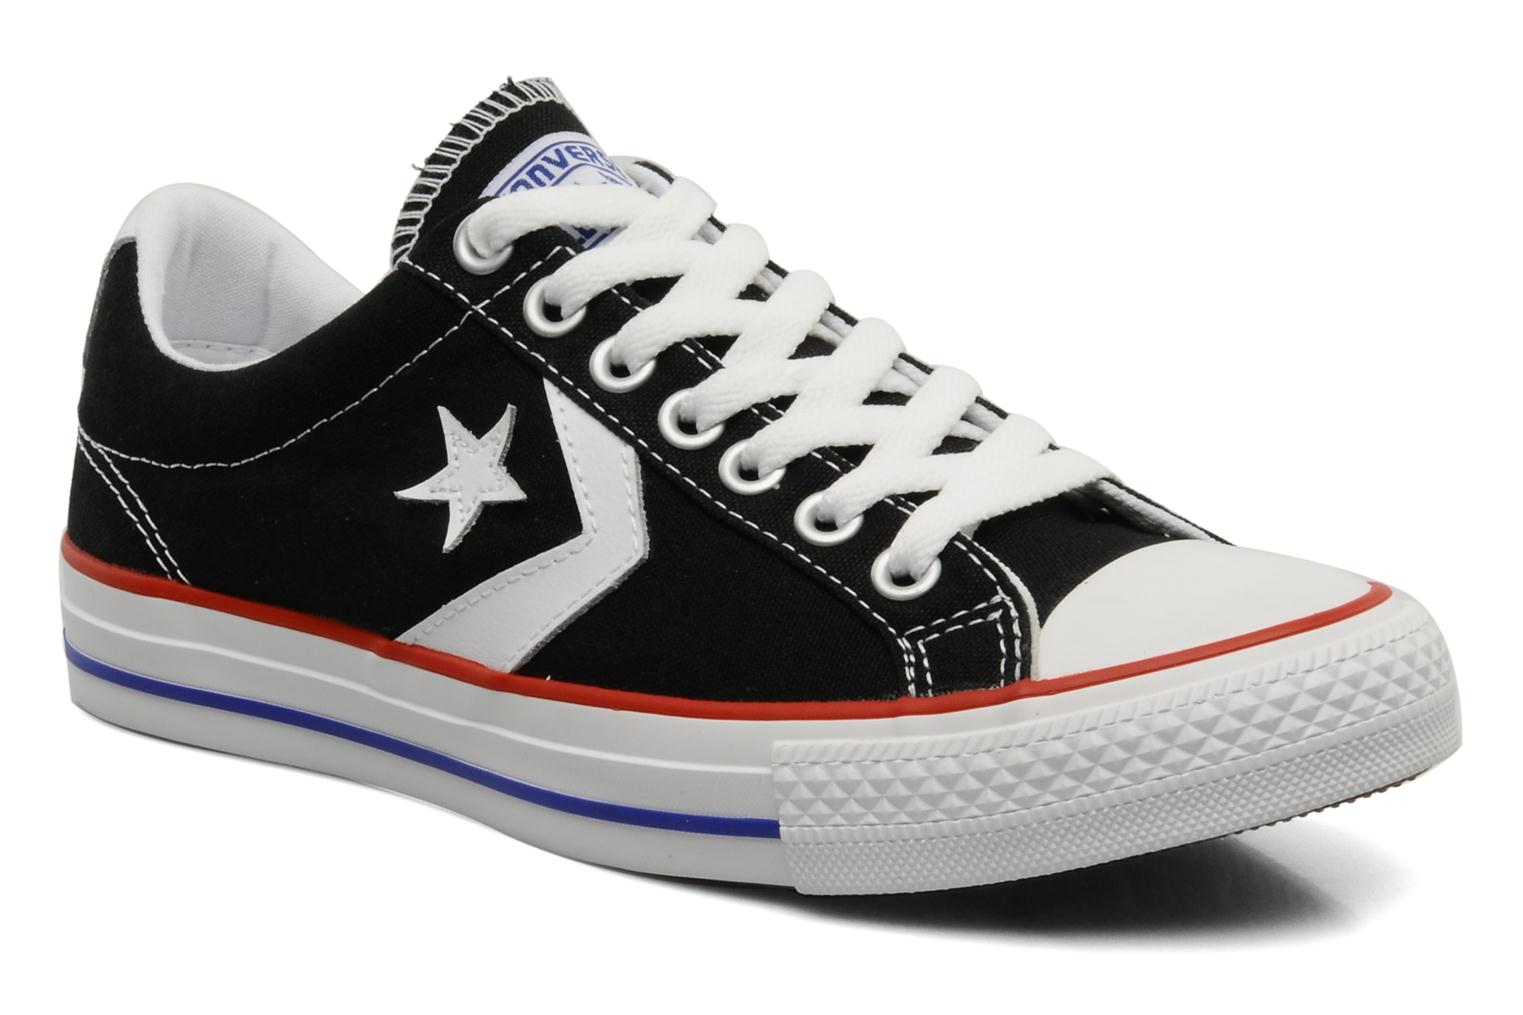 new concept 481c7 ab7bb Baskets Converse Star Player Ev Canvas Ox M Noir vue détail paire